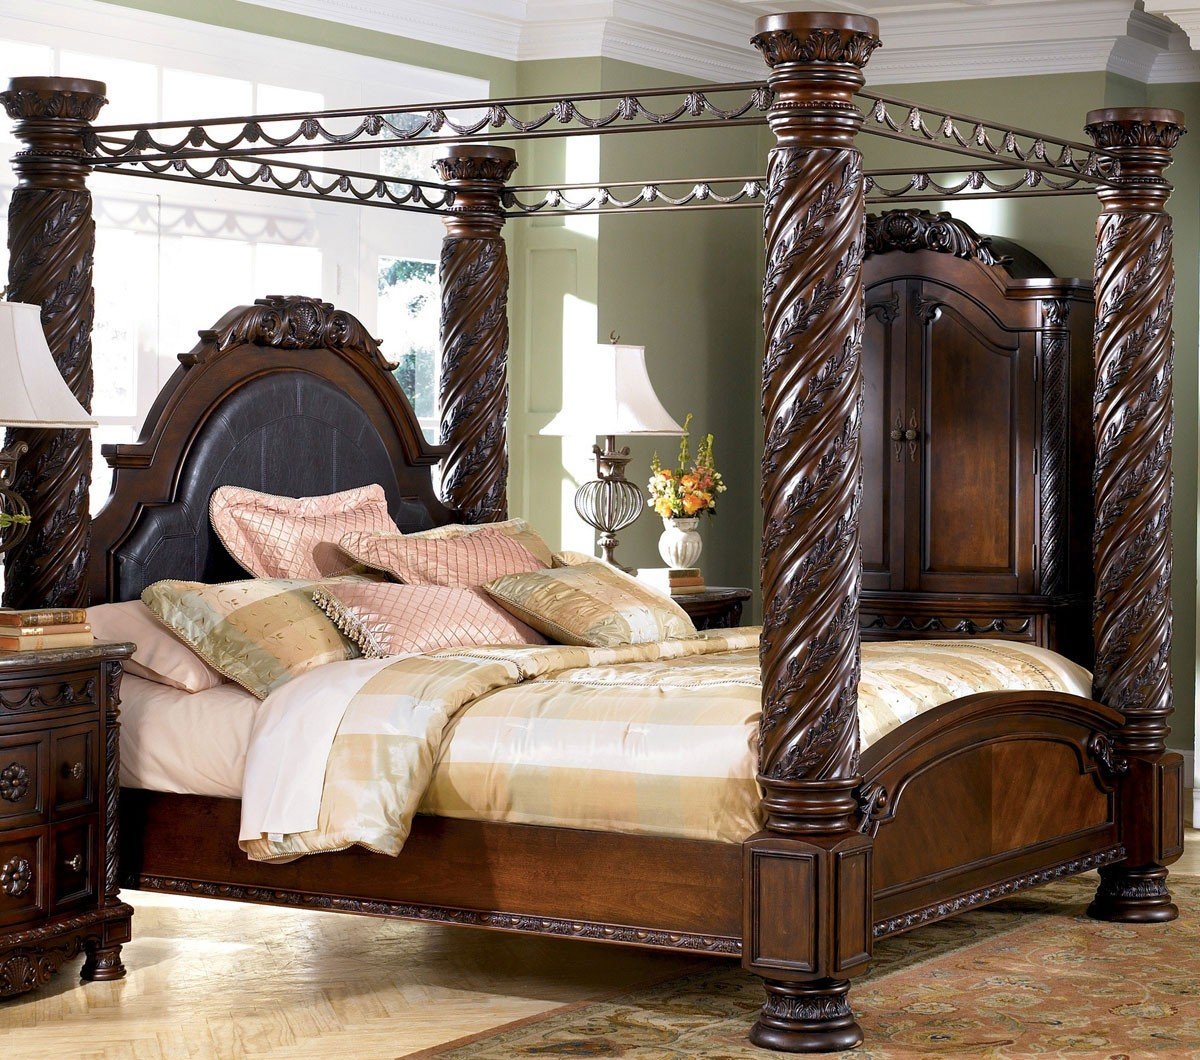 Black Canopy Bed, A Good Idea To Get Comfortable Bedroom